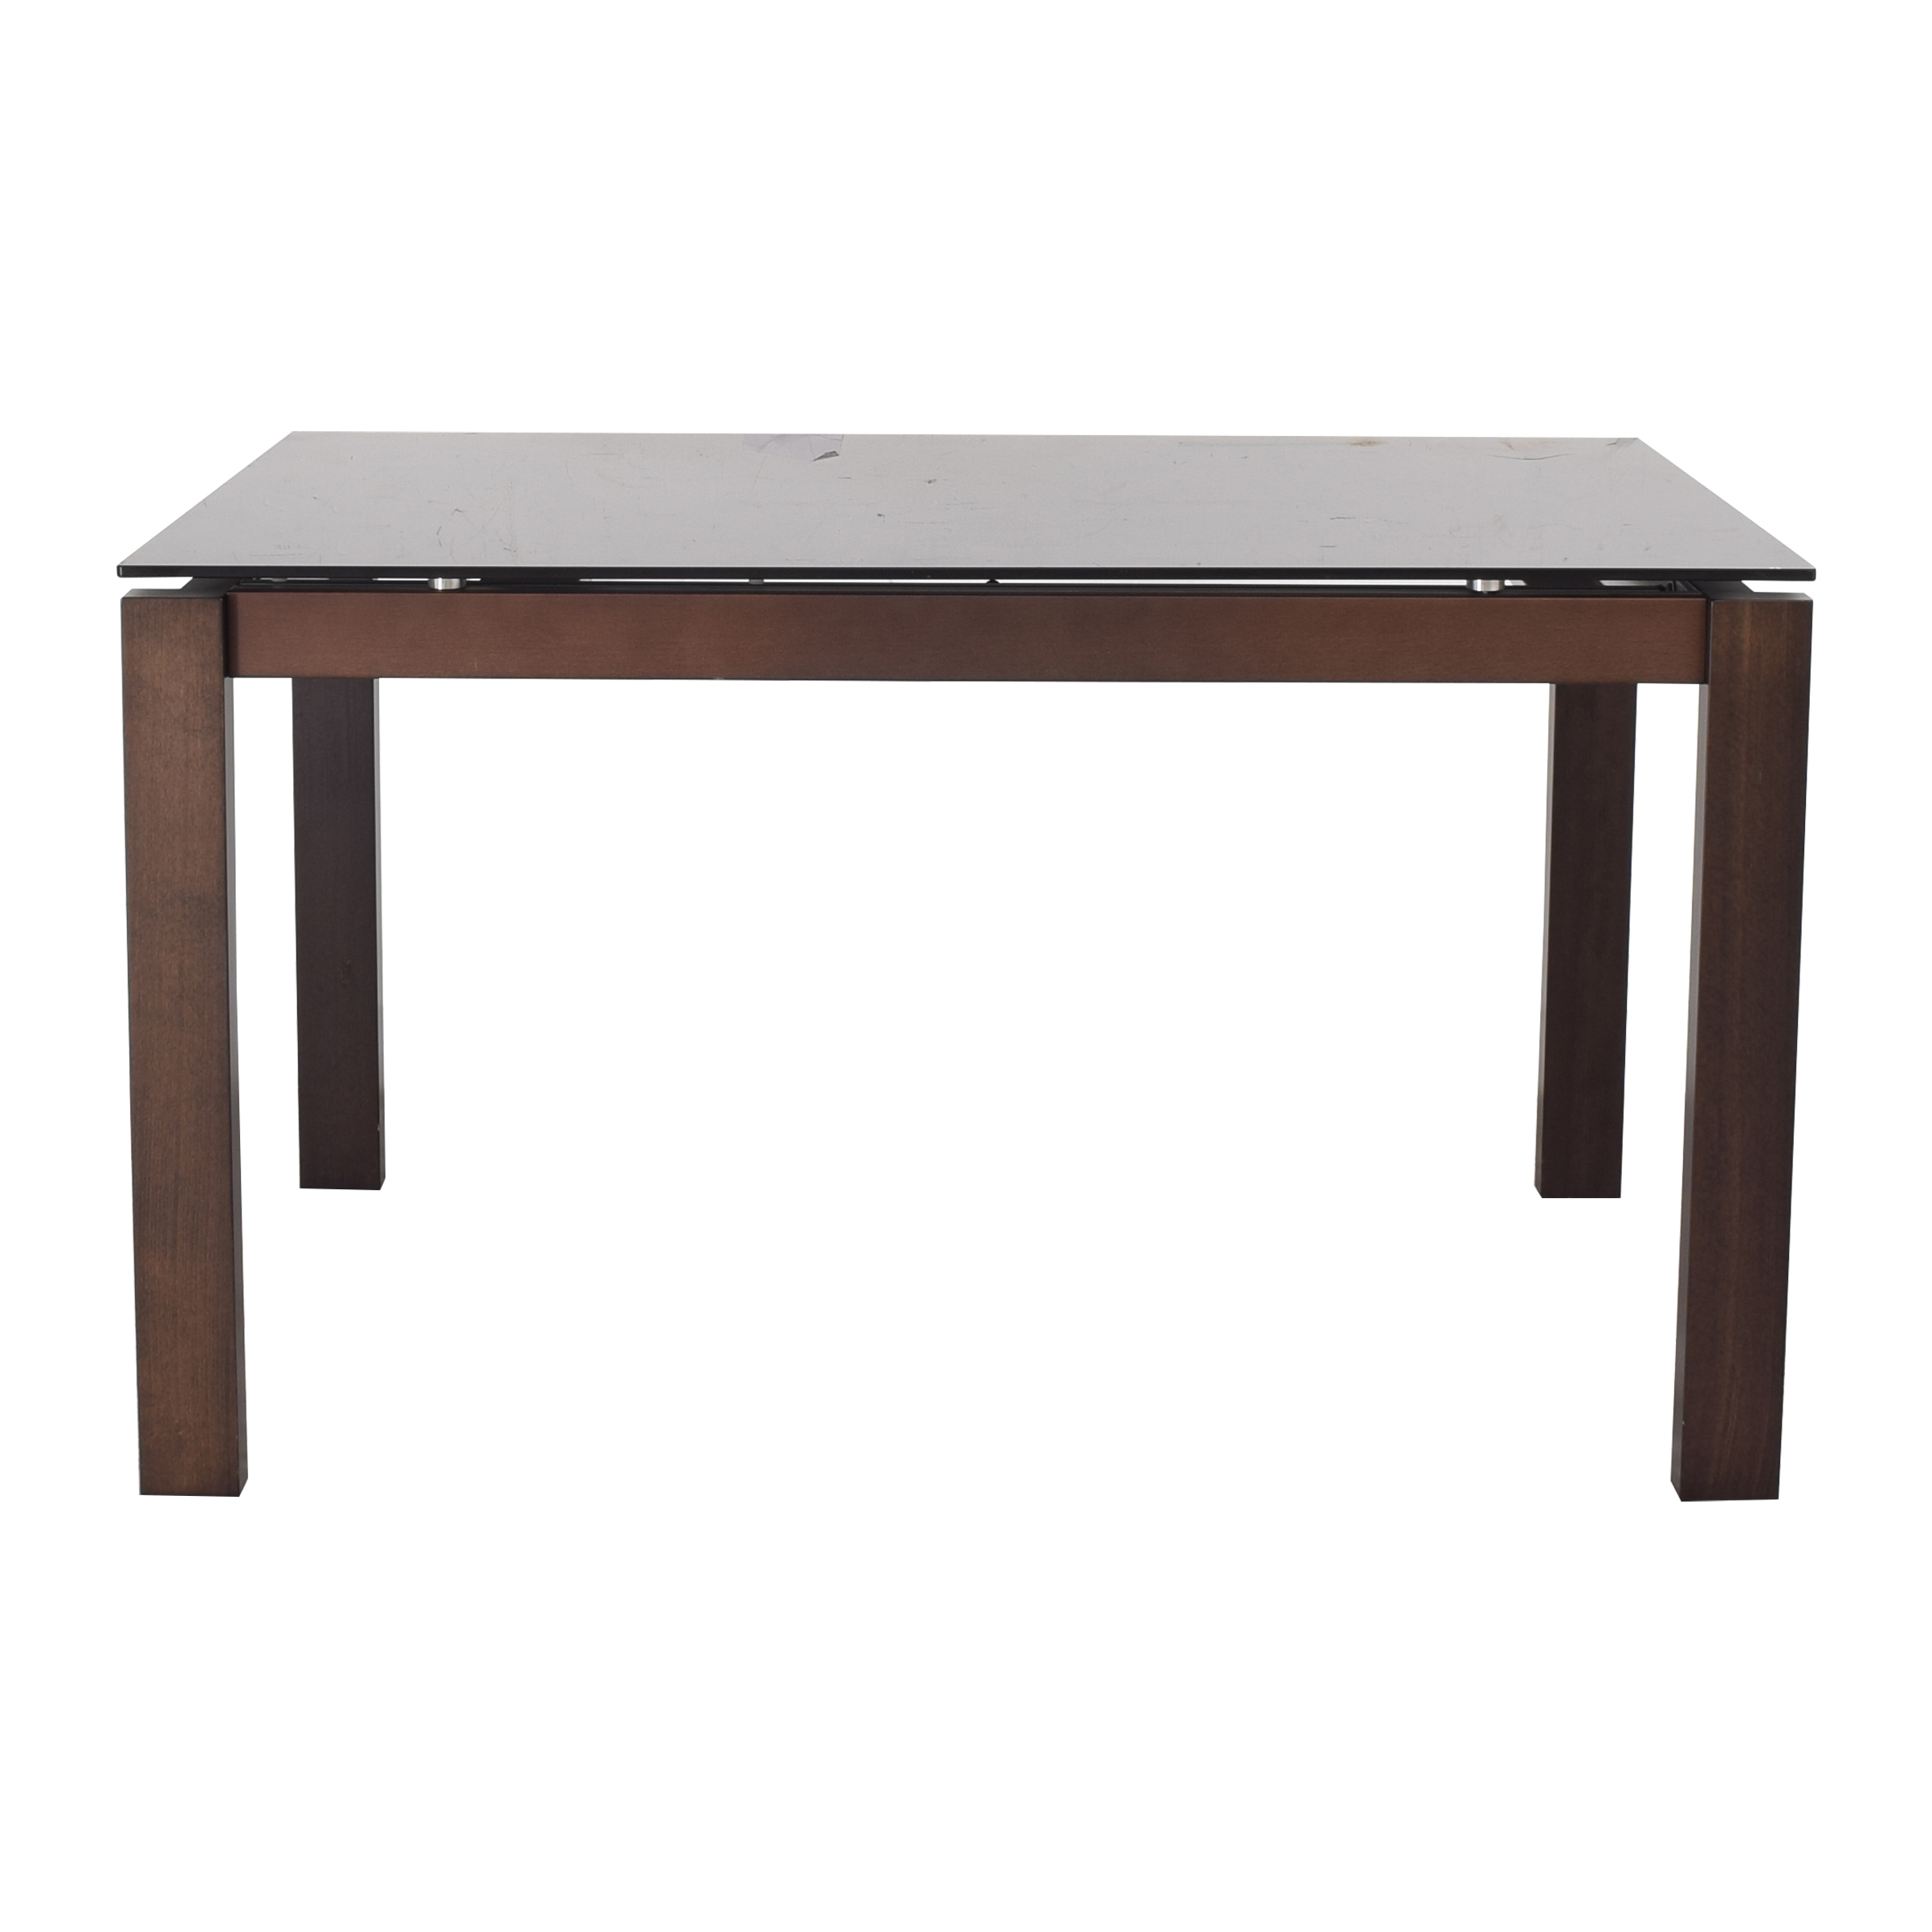 Calligaris Calligaris Extending Dining Table second hand